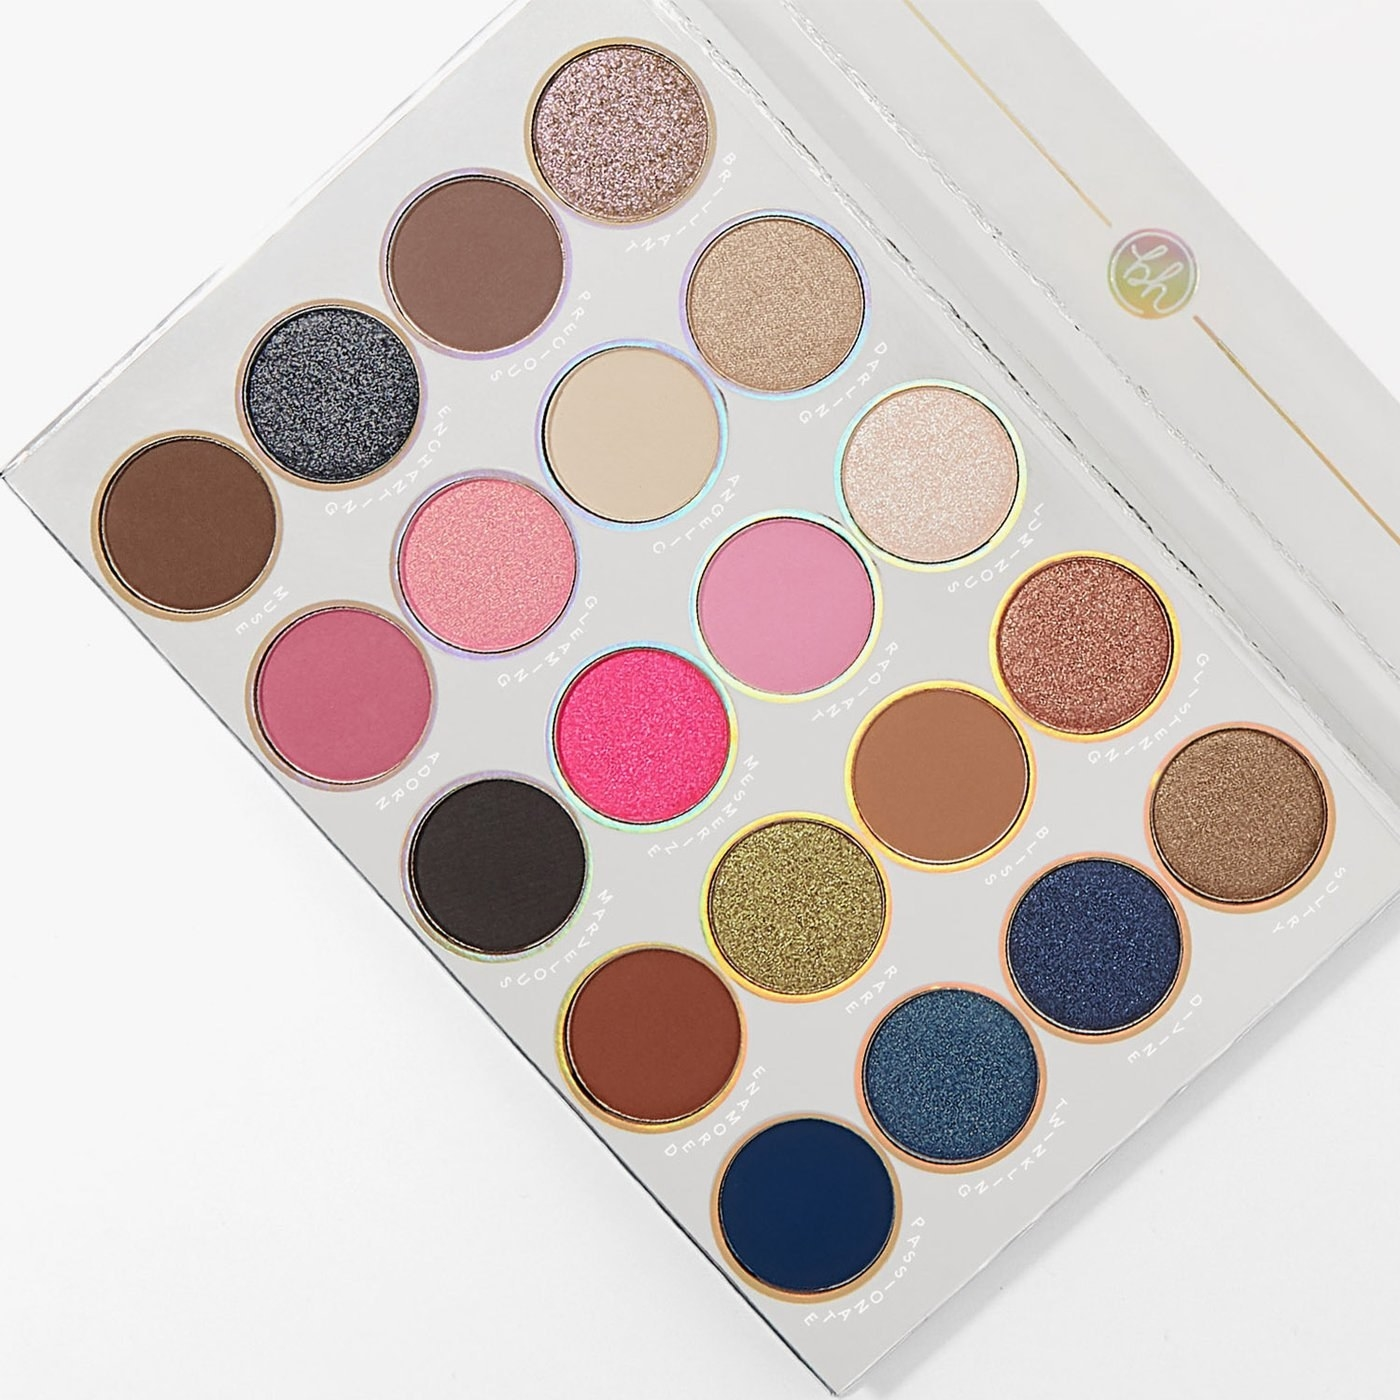 An open eyeshadow palette featuring 20 shades, including blues, browns, pinks, and neutrals